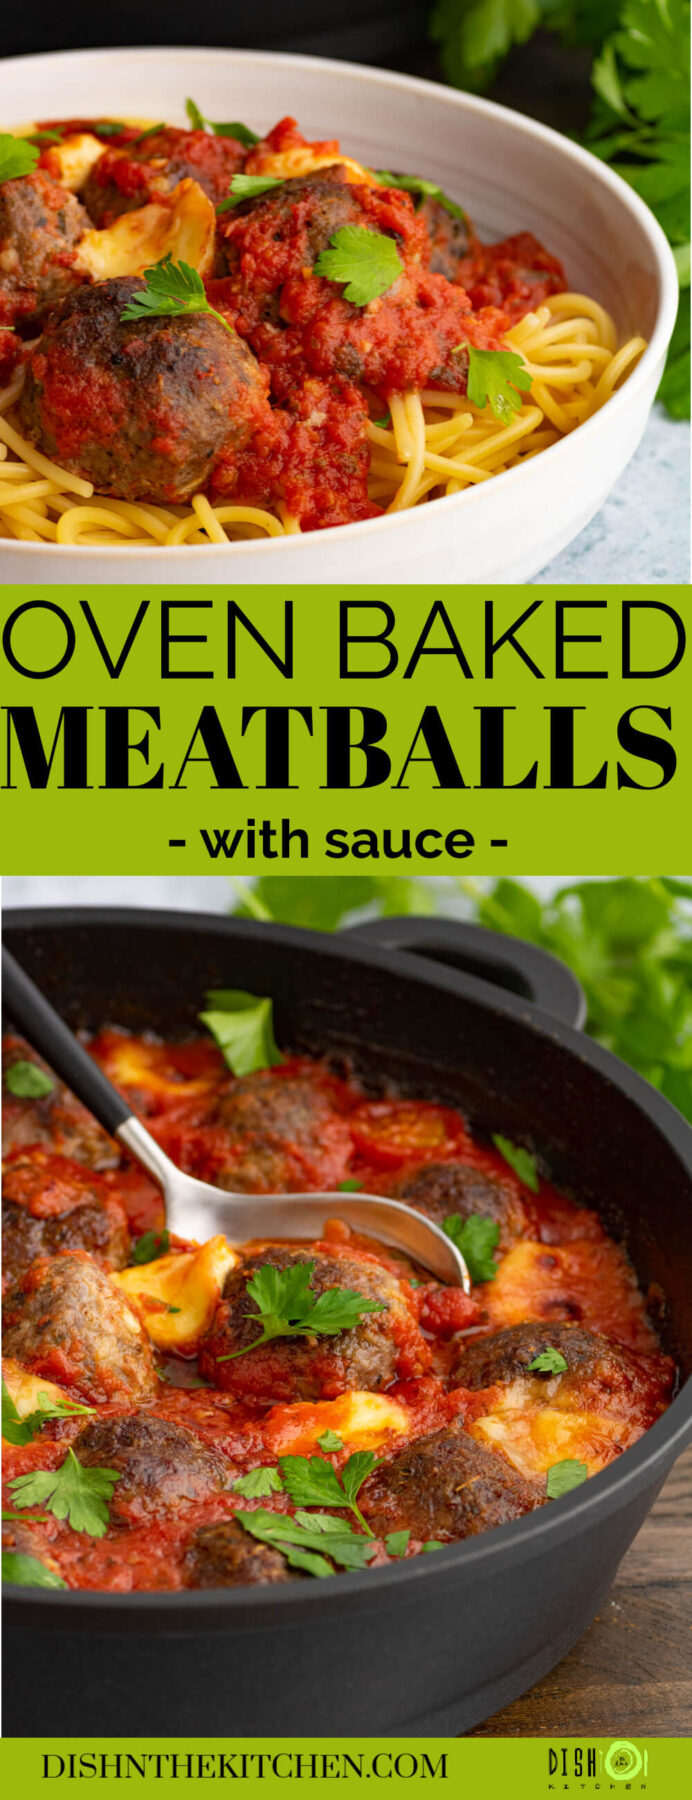 Pinterest image featuring a pan of oven baked meatballs in a rich tomato sauce garnished with Italian parsley.